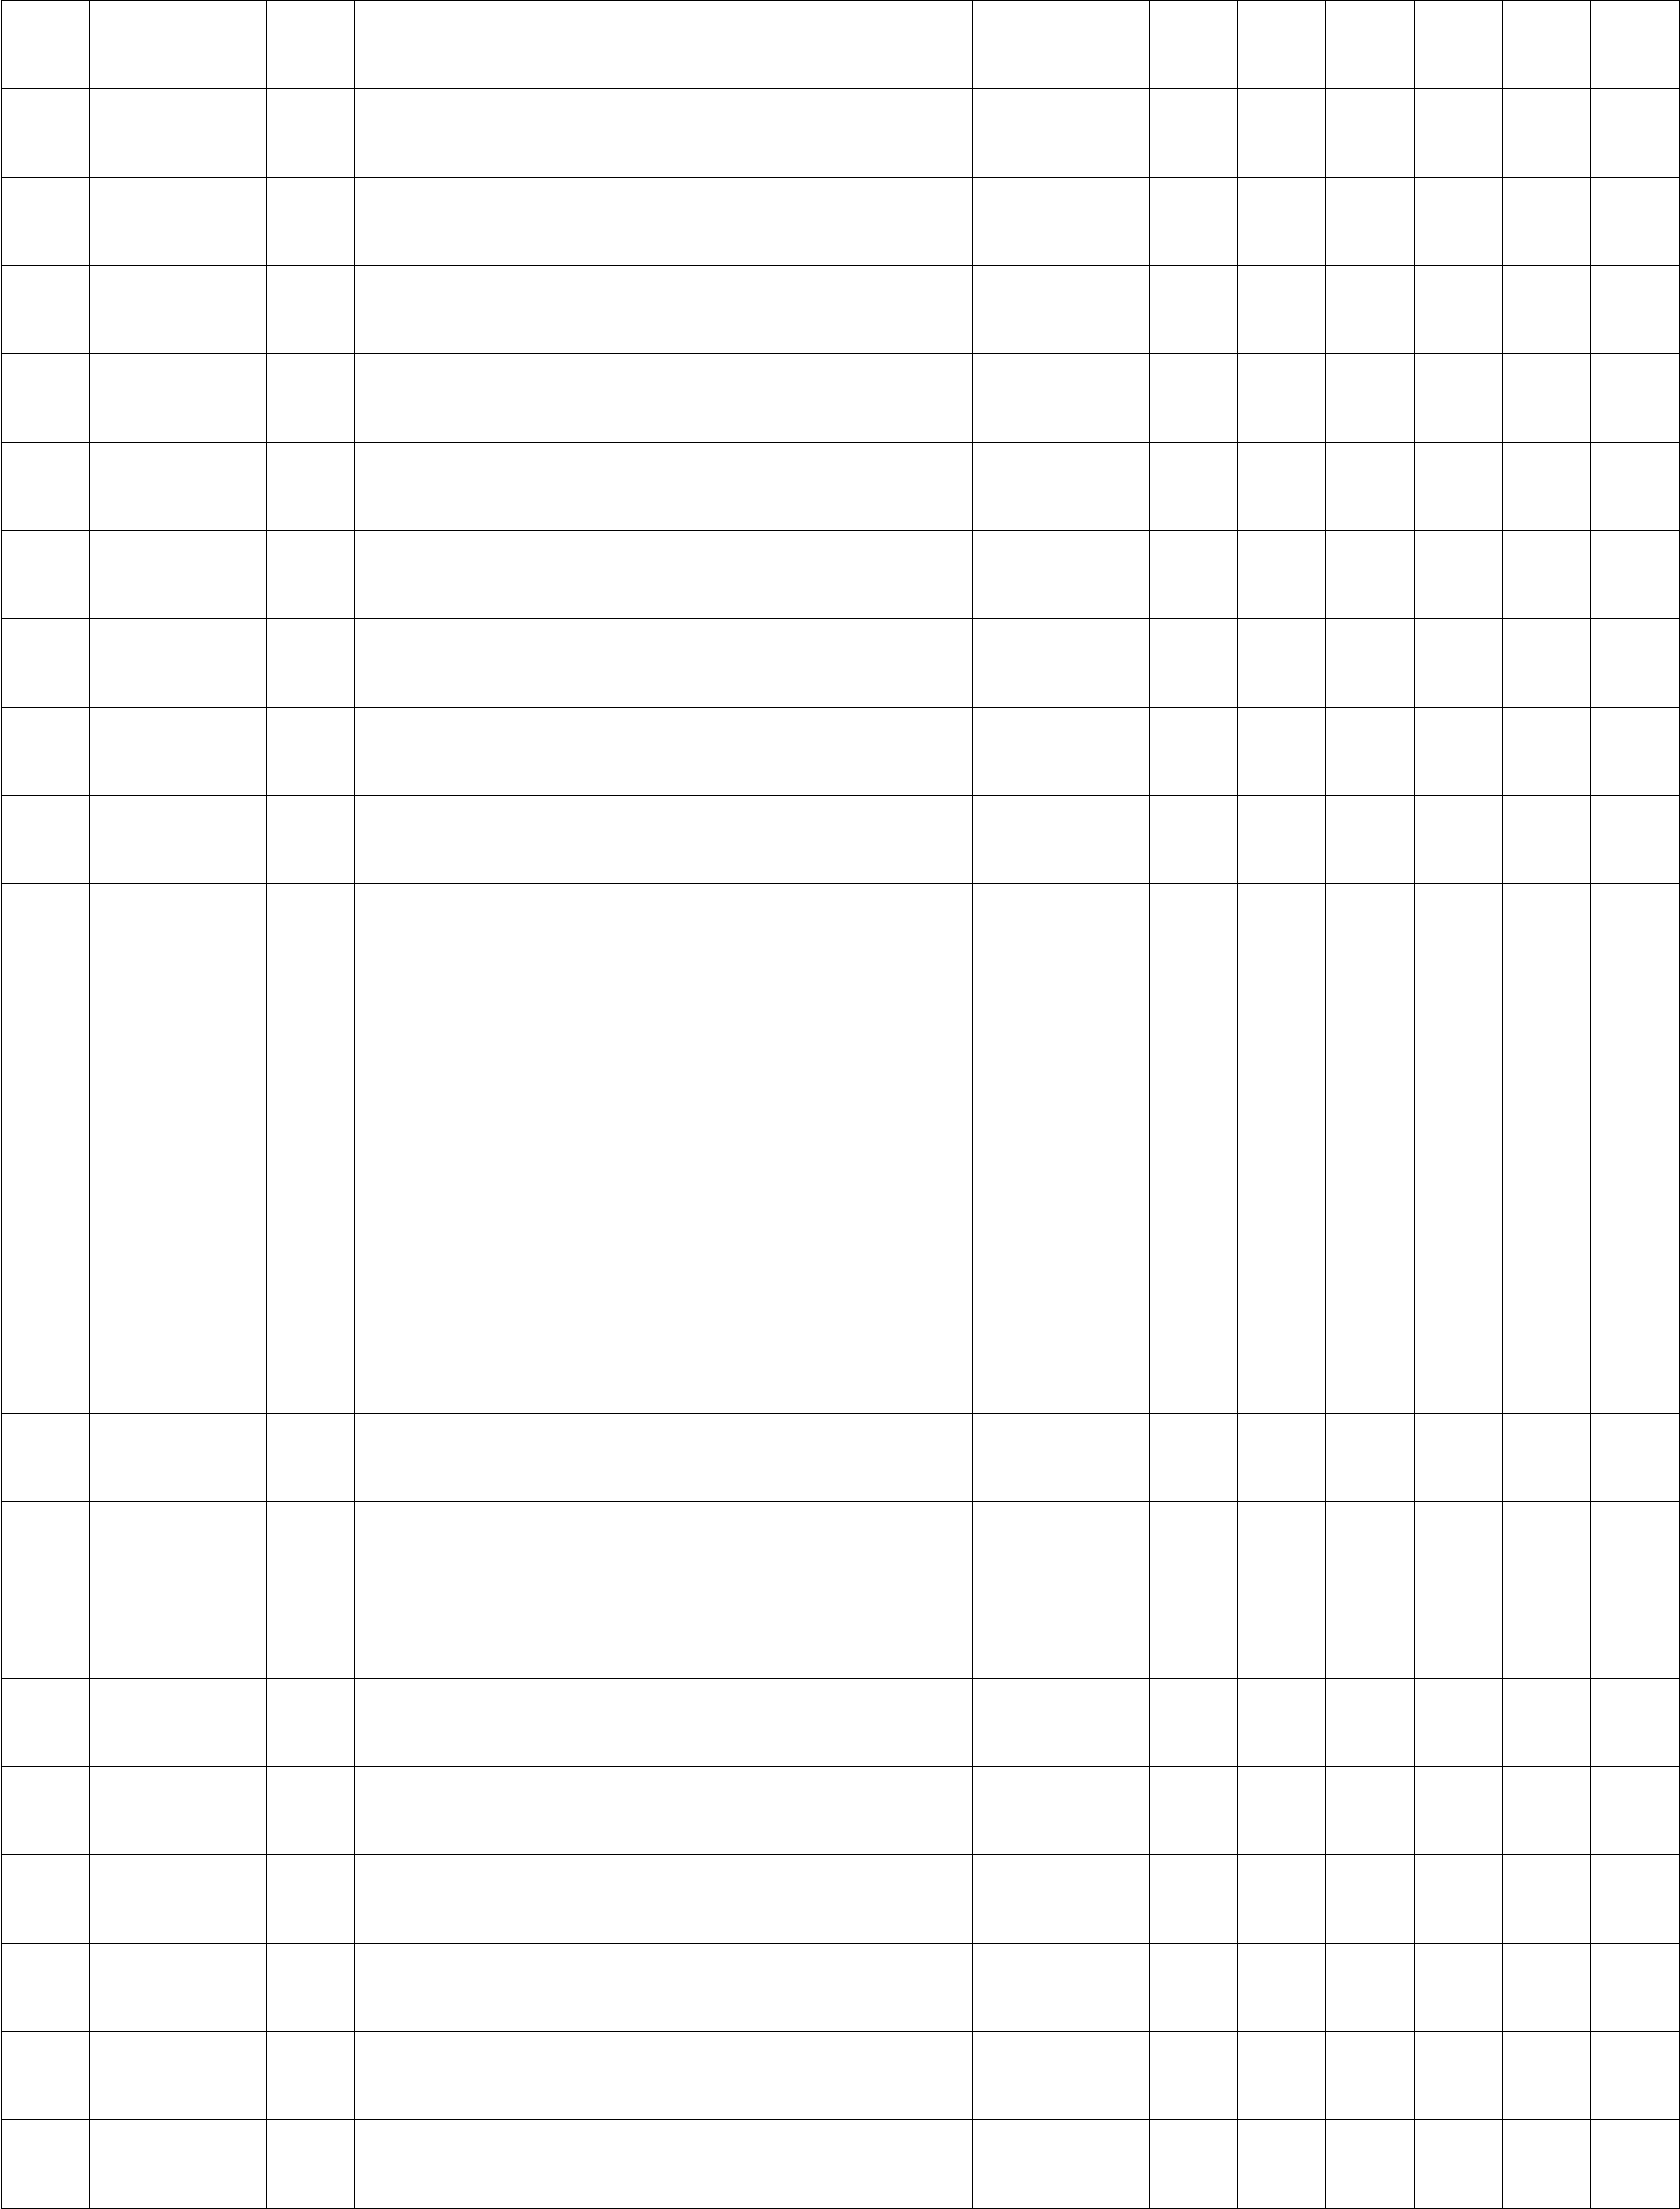 Sample centimeter graph paper template free download for 1 cm graph paper template word